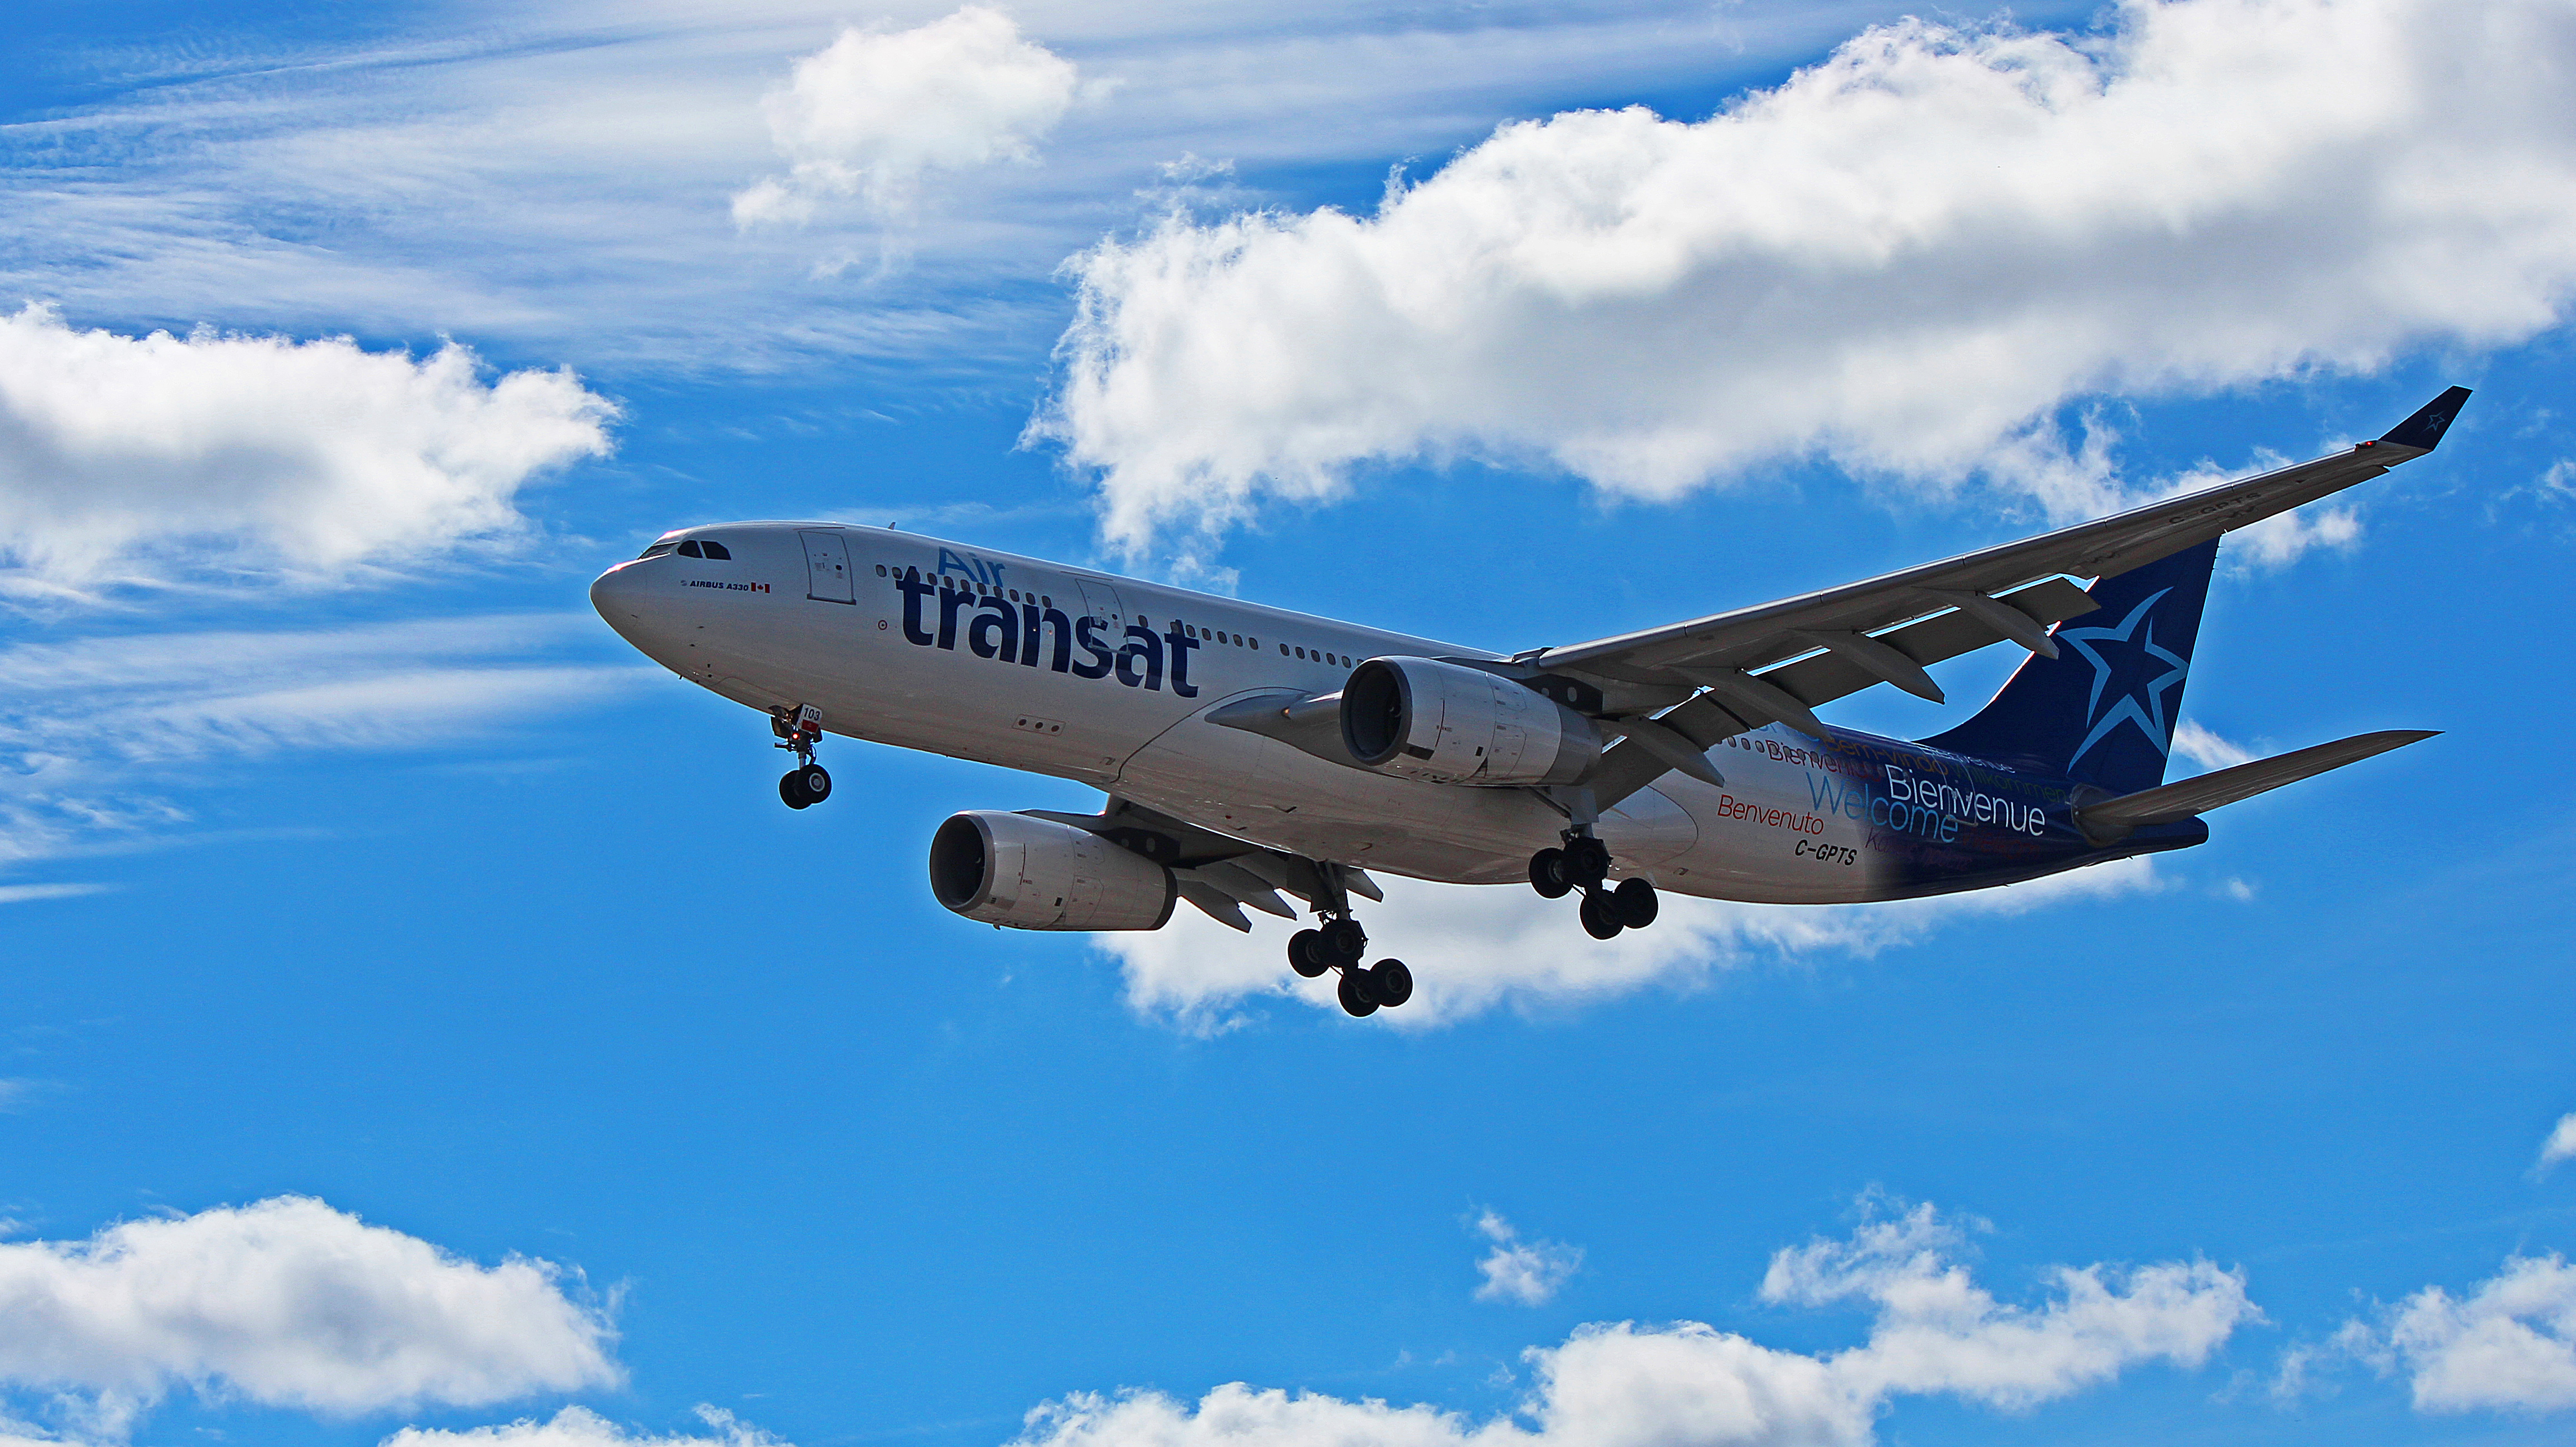 C Gpts Air Transat Airbus A330 200 Images From Toronto Pearson